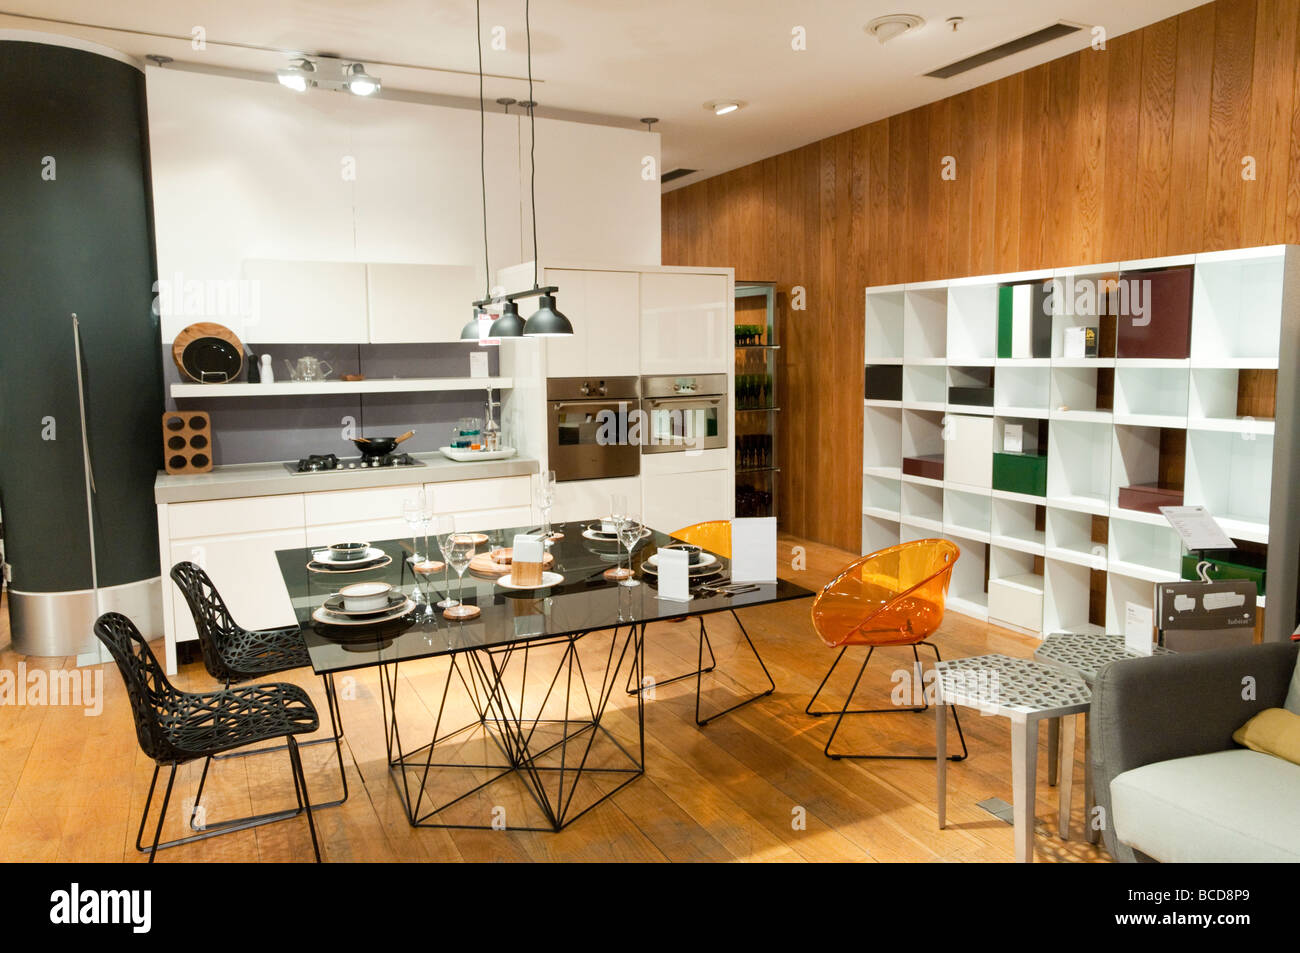 habitat shop stock photos habitat shop stock images alamy